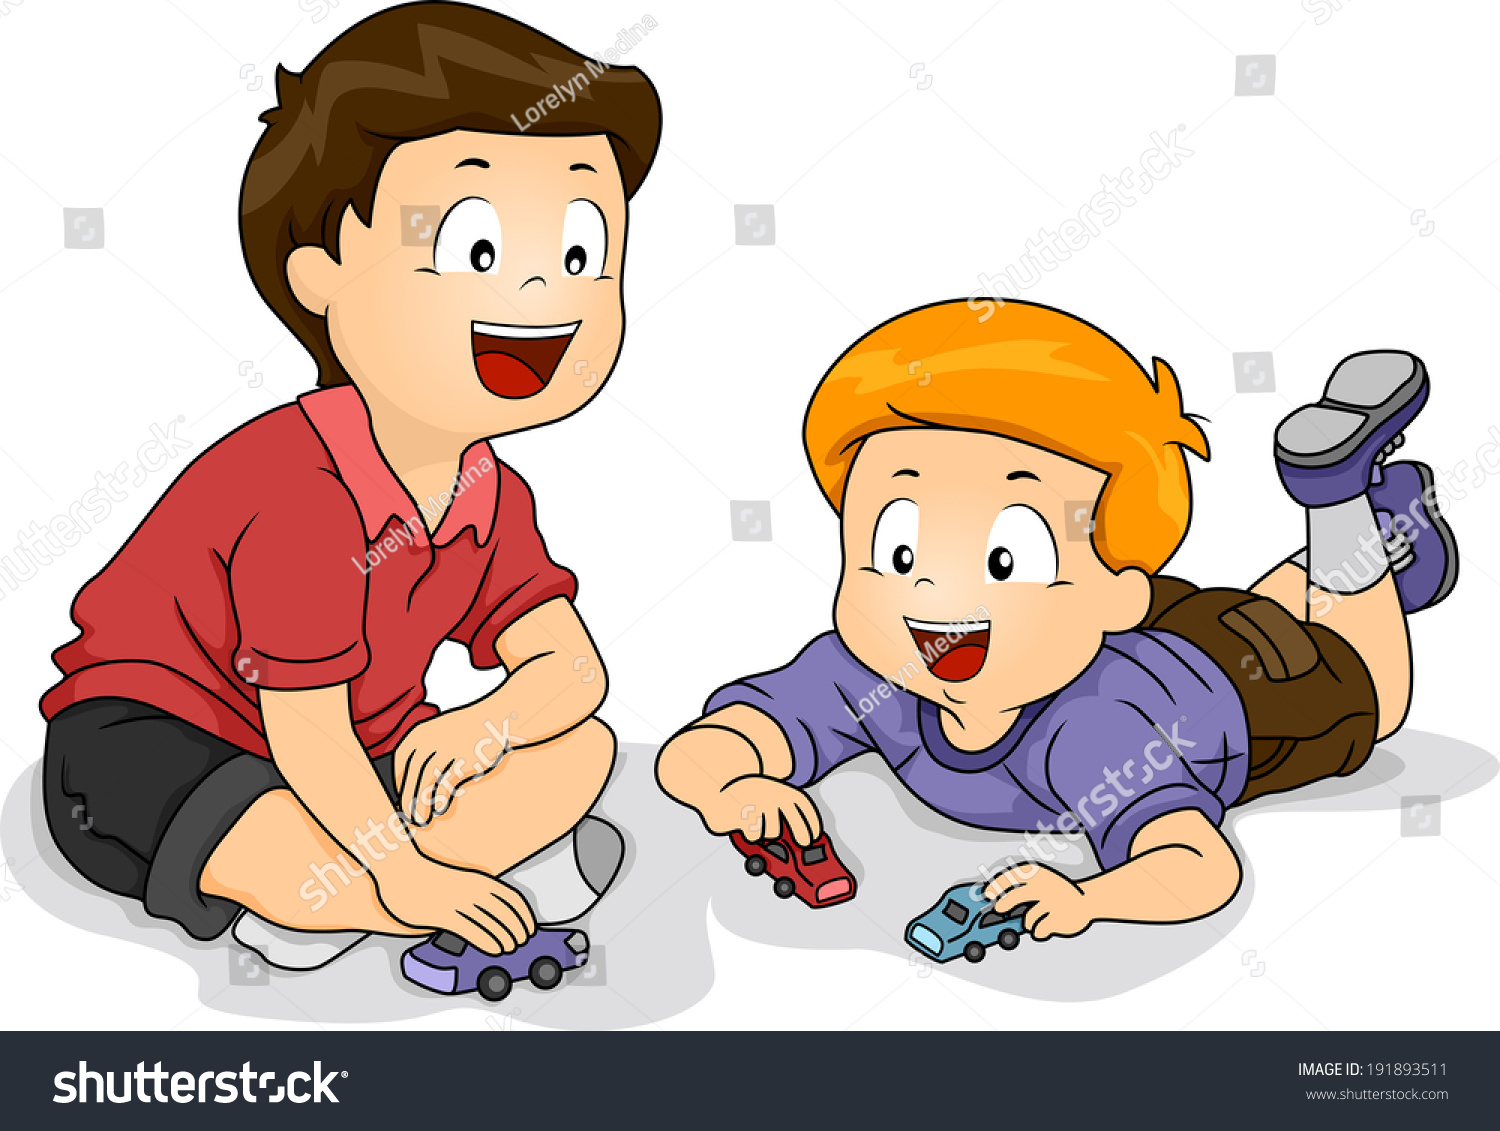 Little Boy Toys Clip Art : Illustration featuring little boys playing toy stock